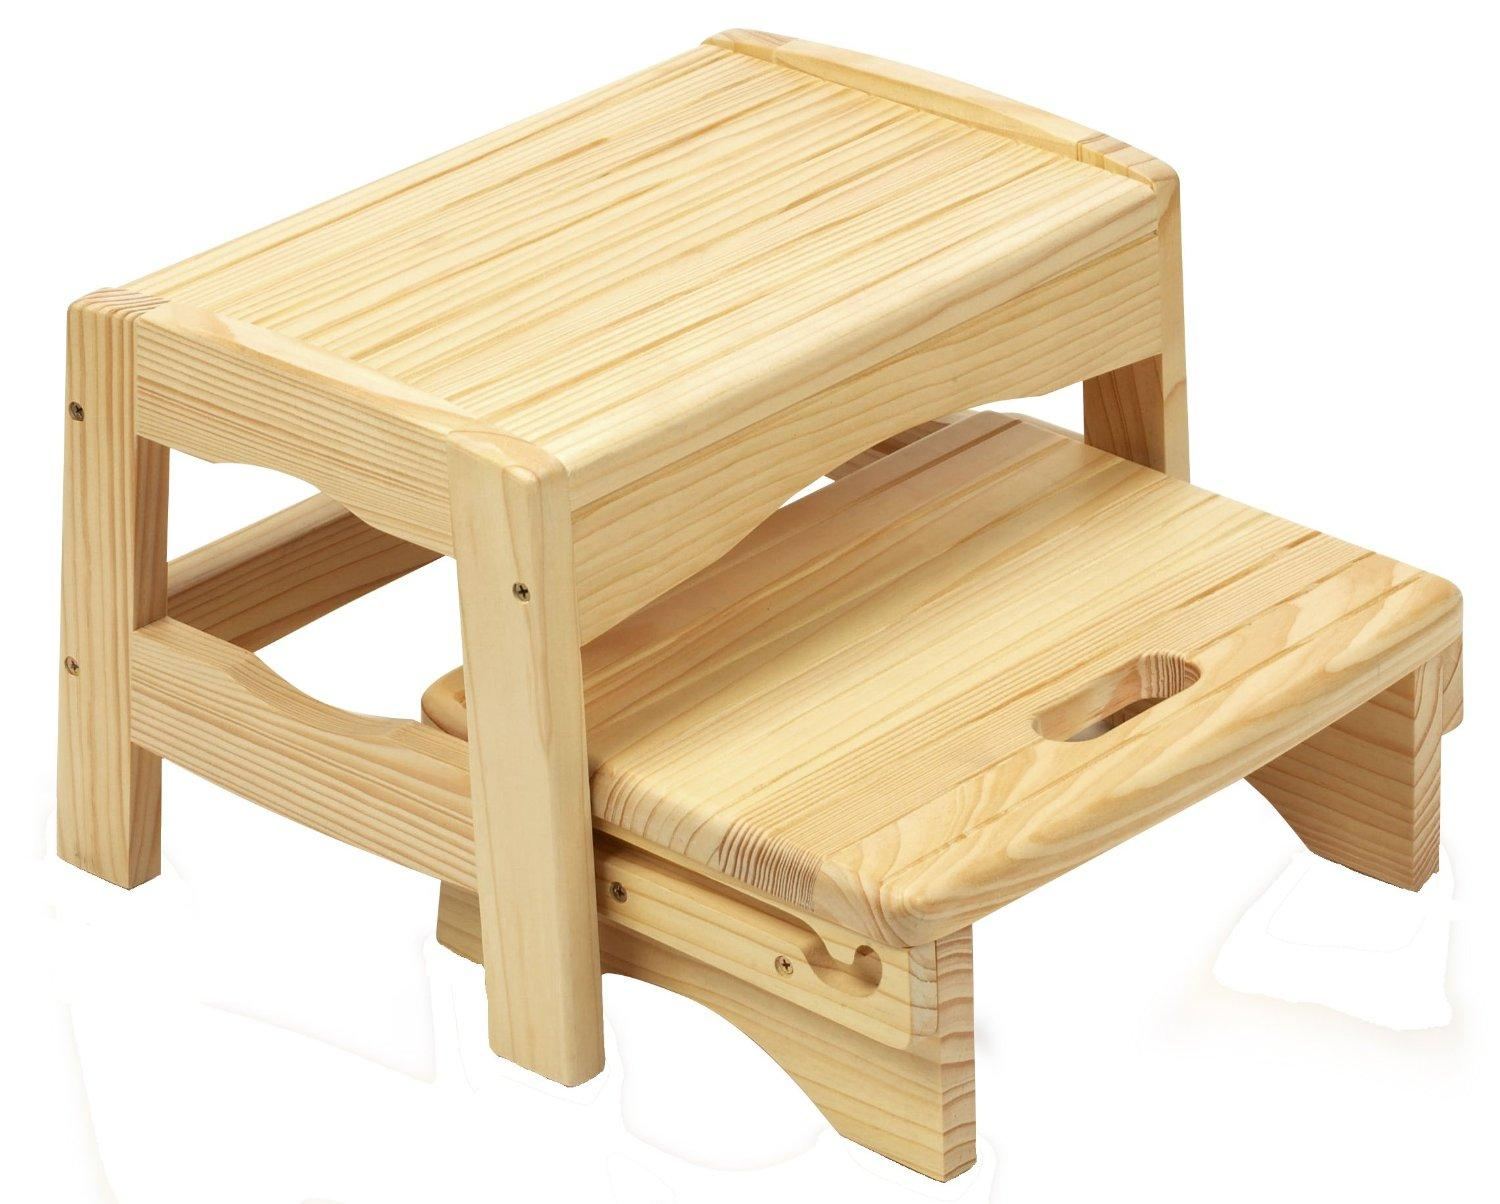 safety 1st wooden 2 step stool the safety 1st wooden 2 step stool is